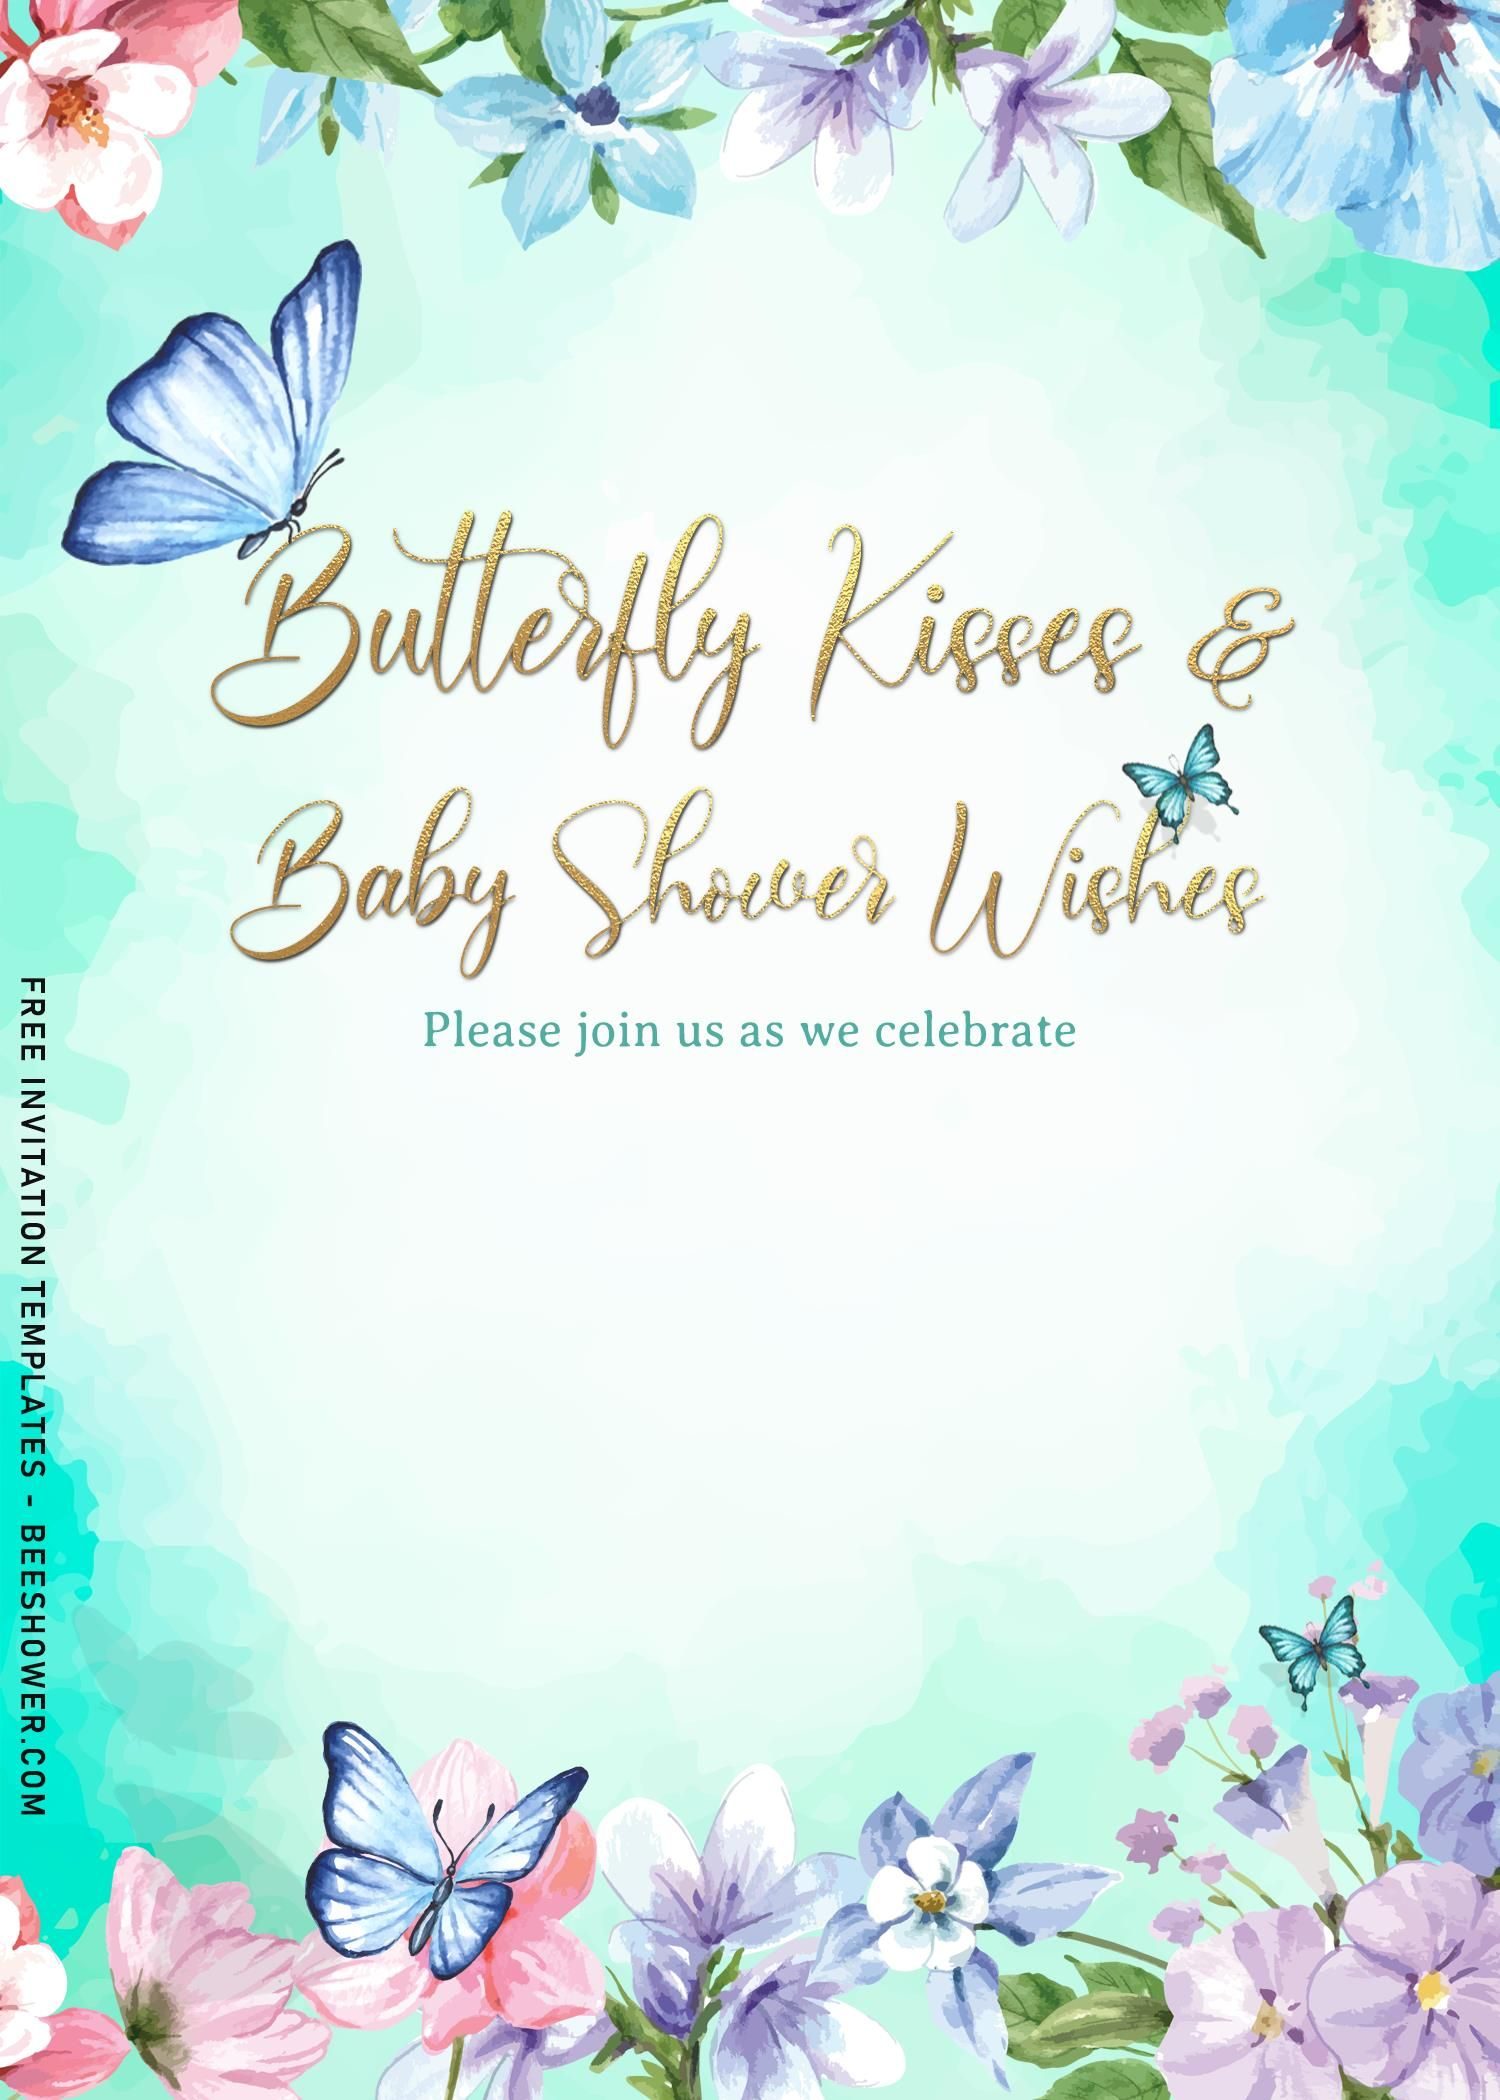 7 Beautiful Watercolor Butterfly Baby Shower Invitation Templates In 2021 Butterfly Baby Shower Invitations Butterfly Baby Shower Baby Shower Invitation Templates